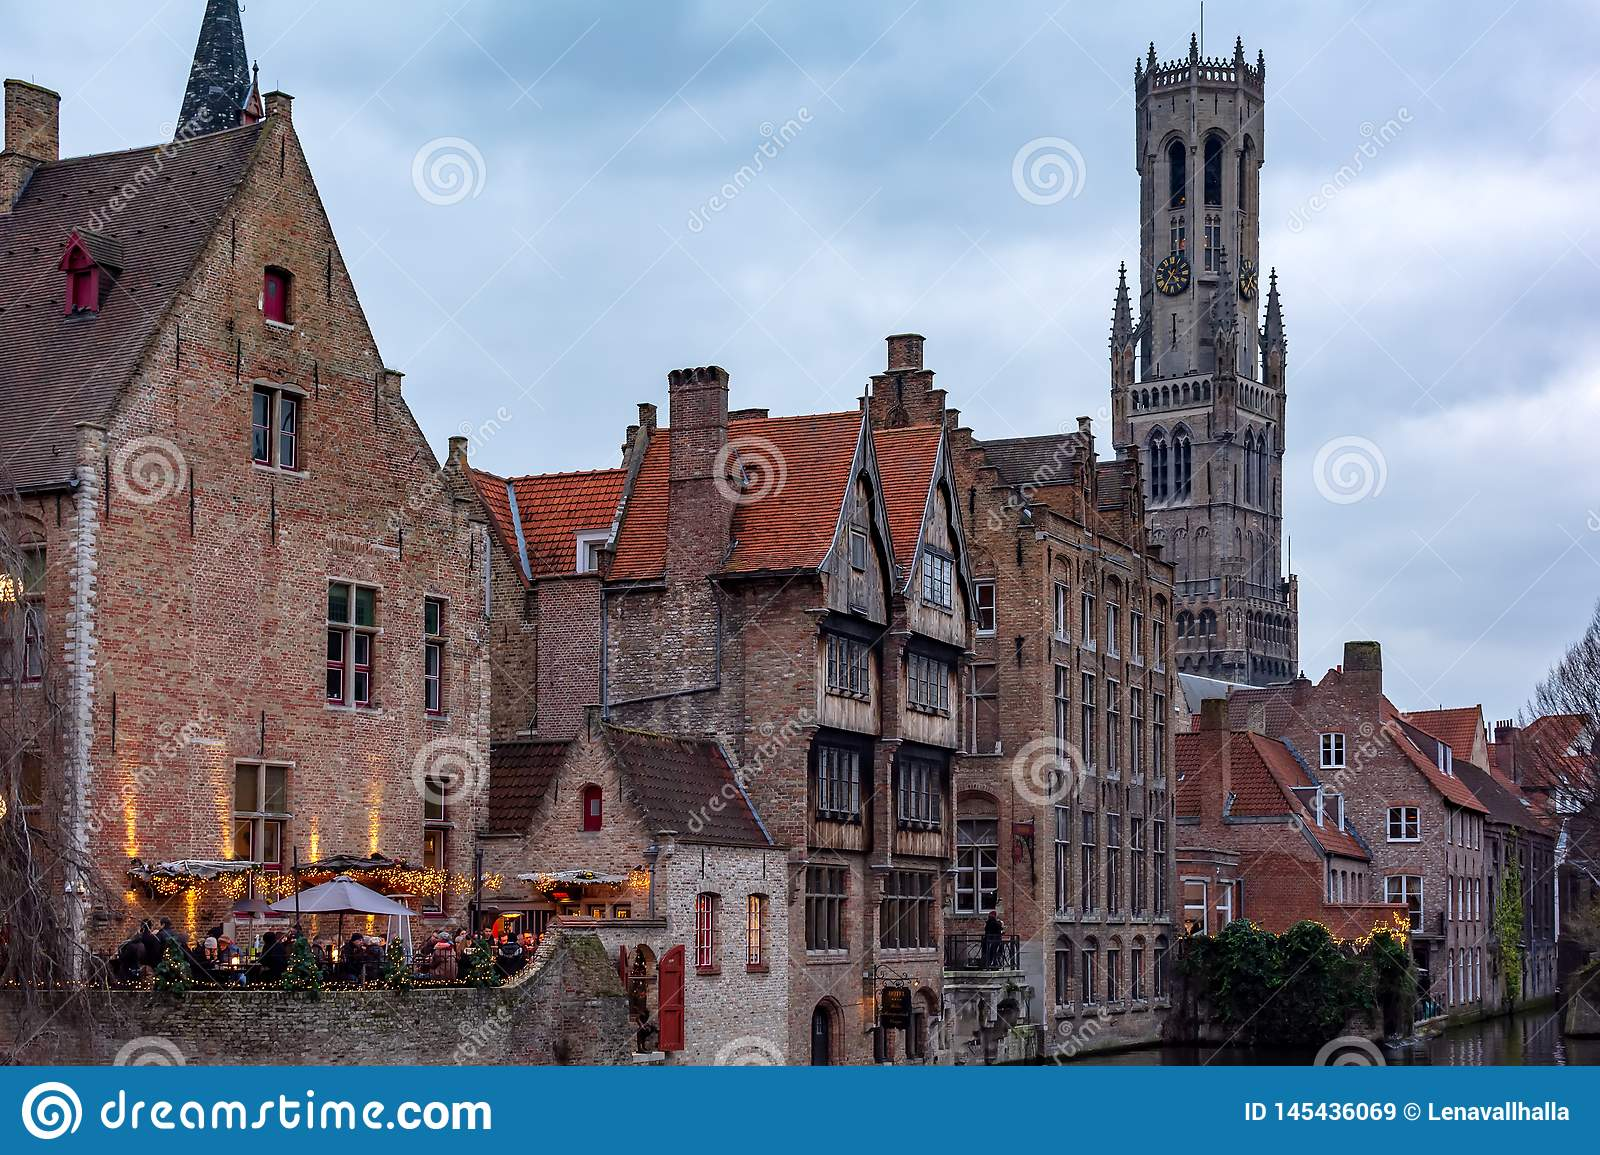 View to the classic medieval buildings and Belfry of Bruges from the Rozenhoedkaai